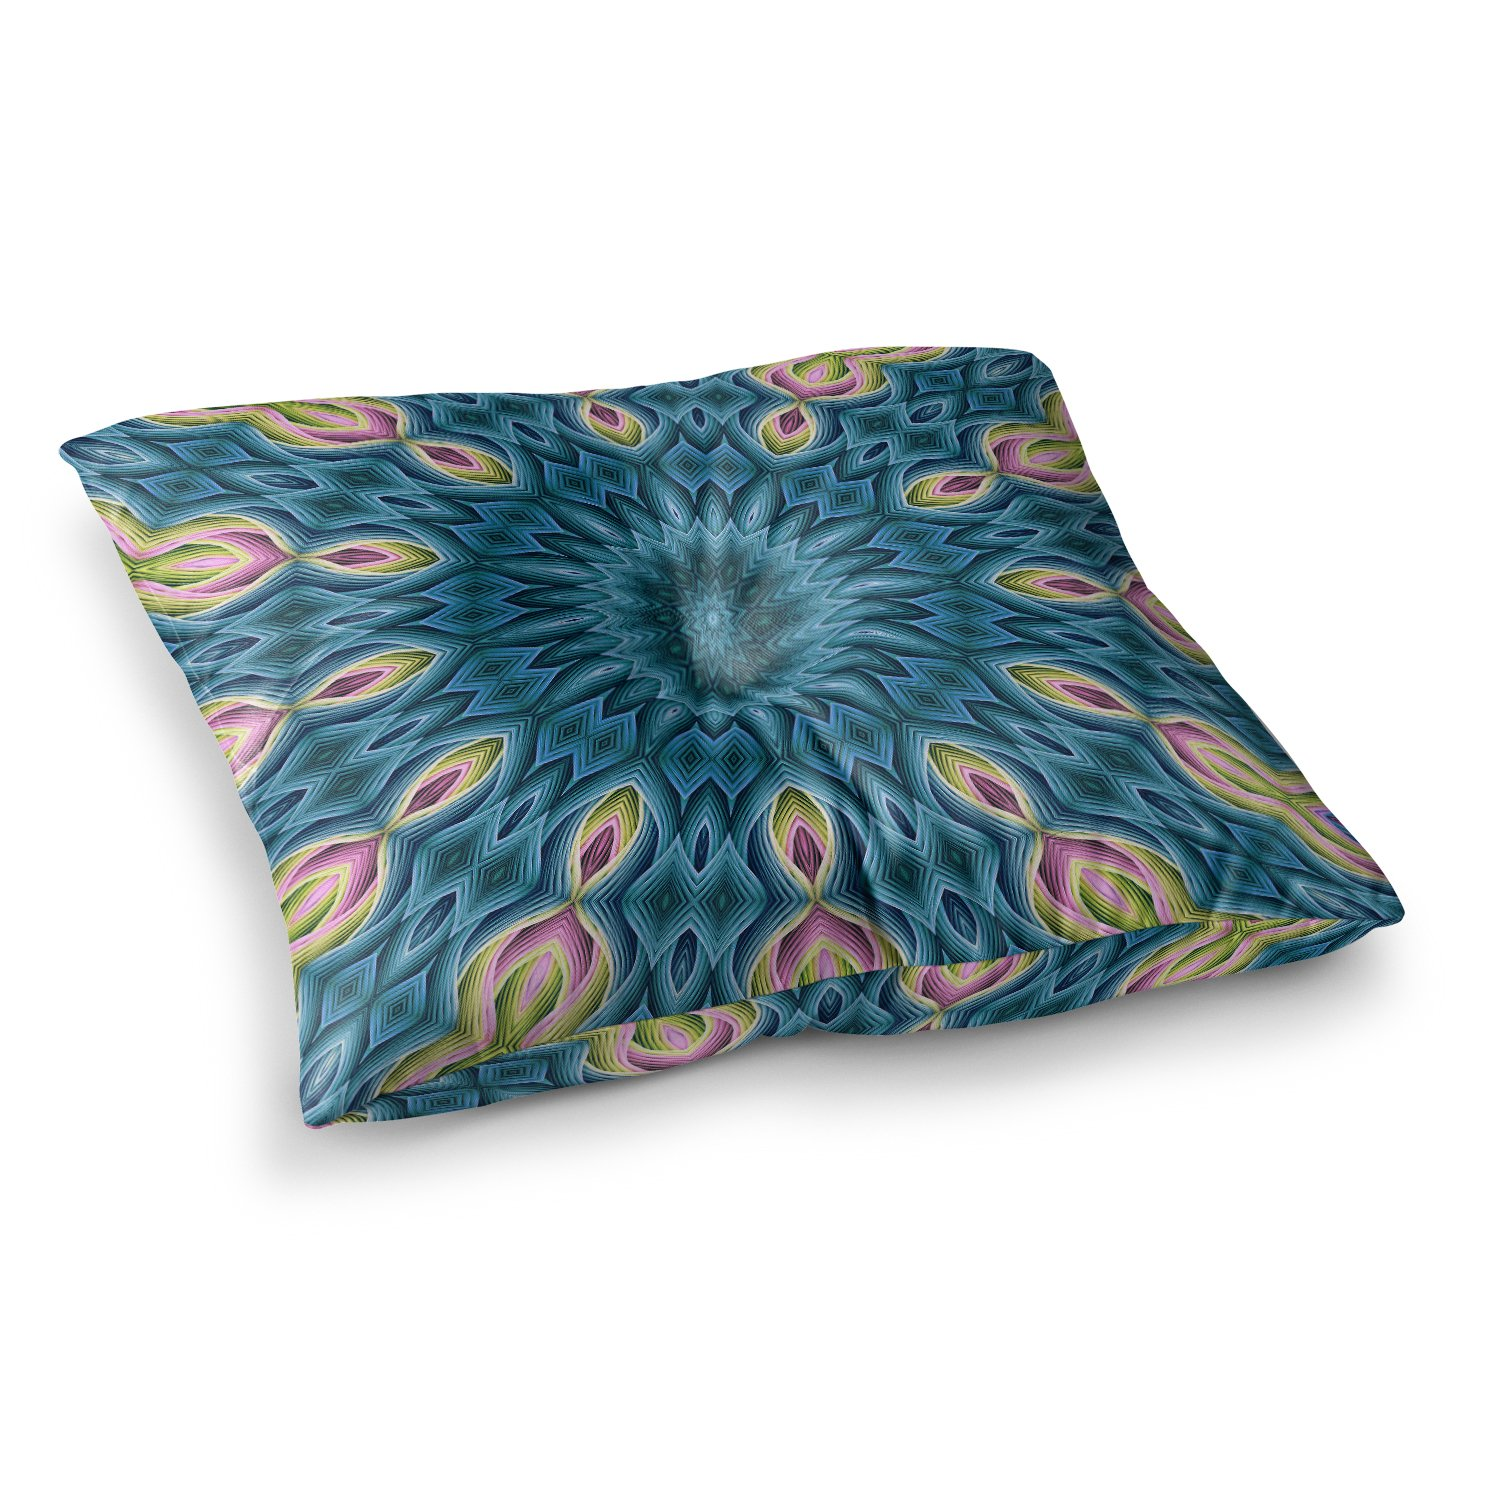 Kess InHouse Sylvia Cook Zapped Blue Teal 23 x 23 Square Floor Pillow